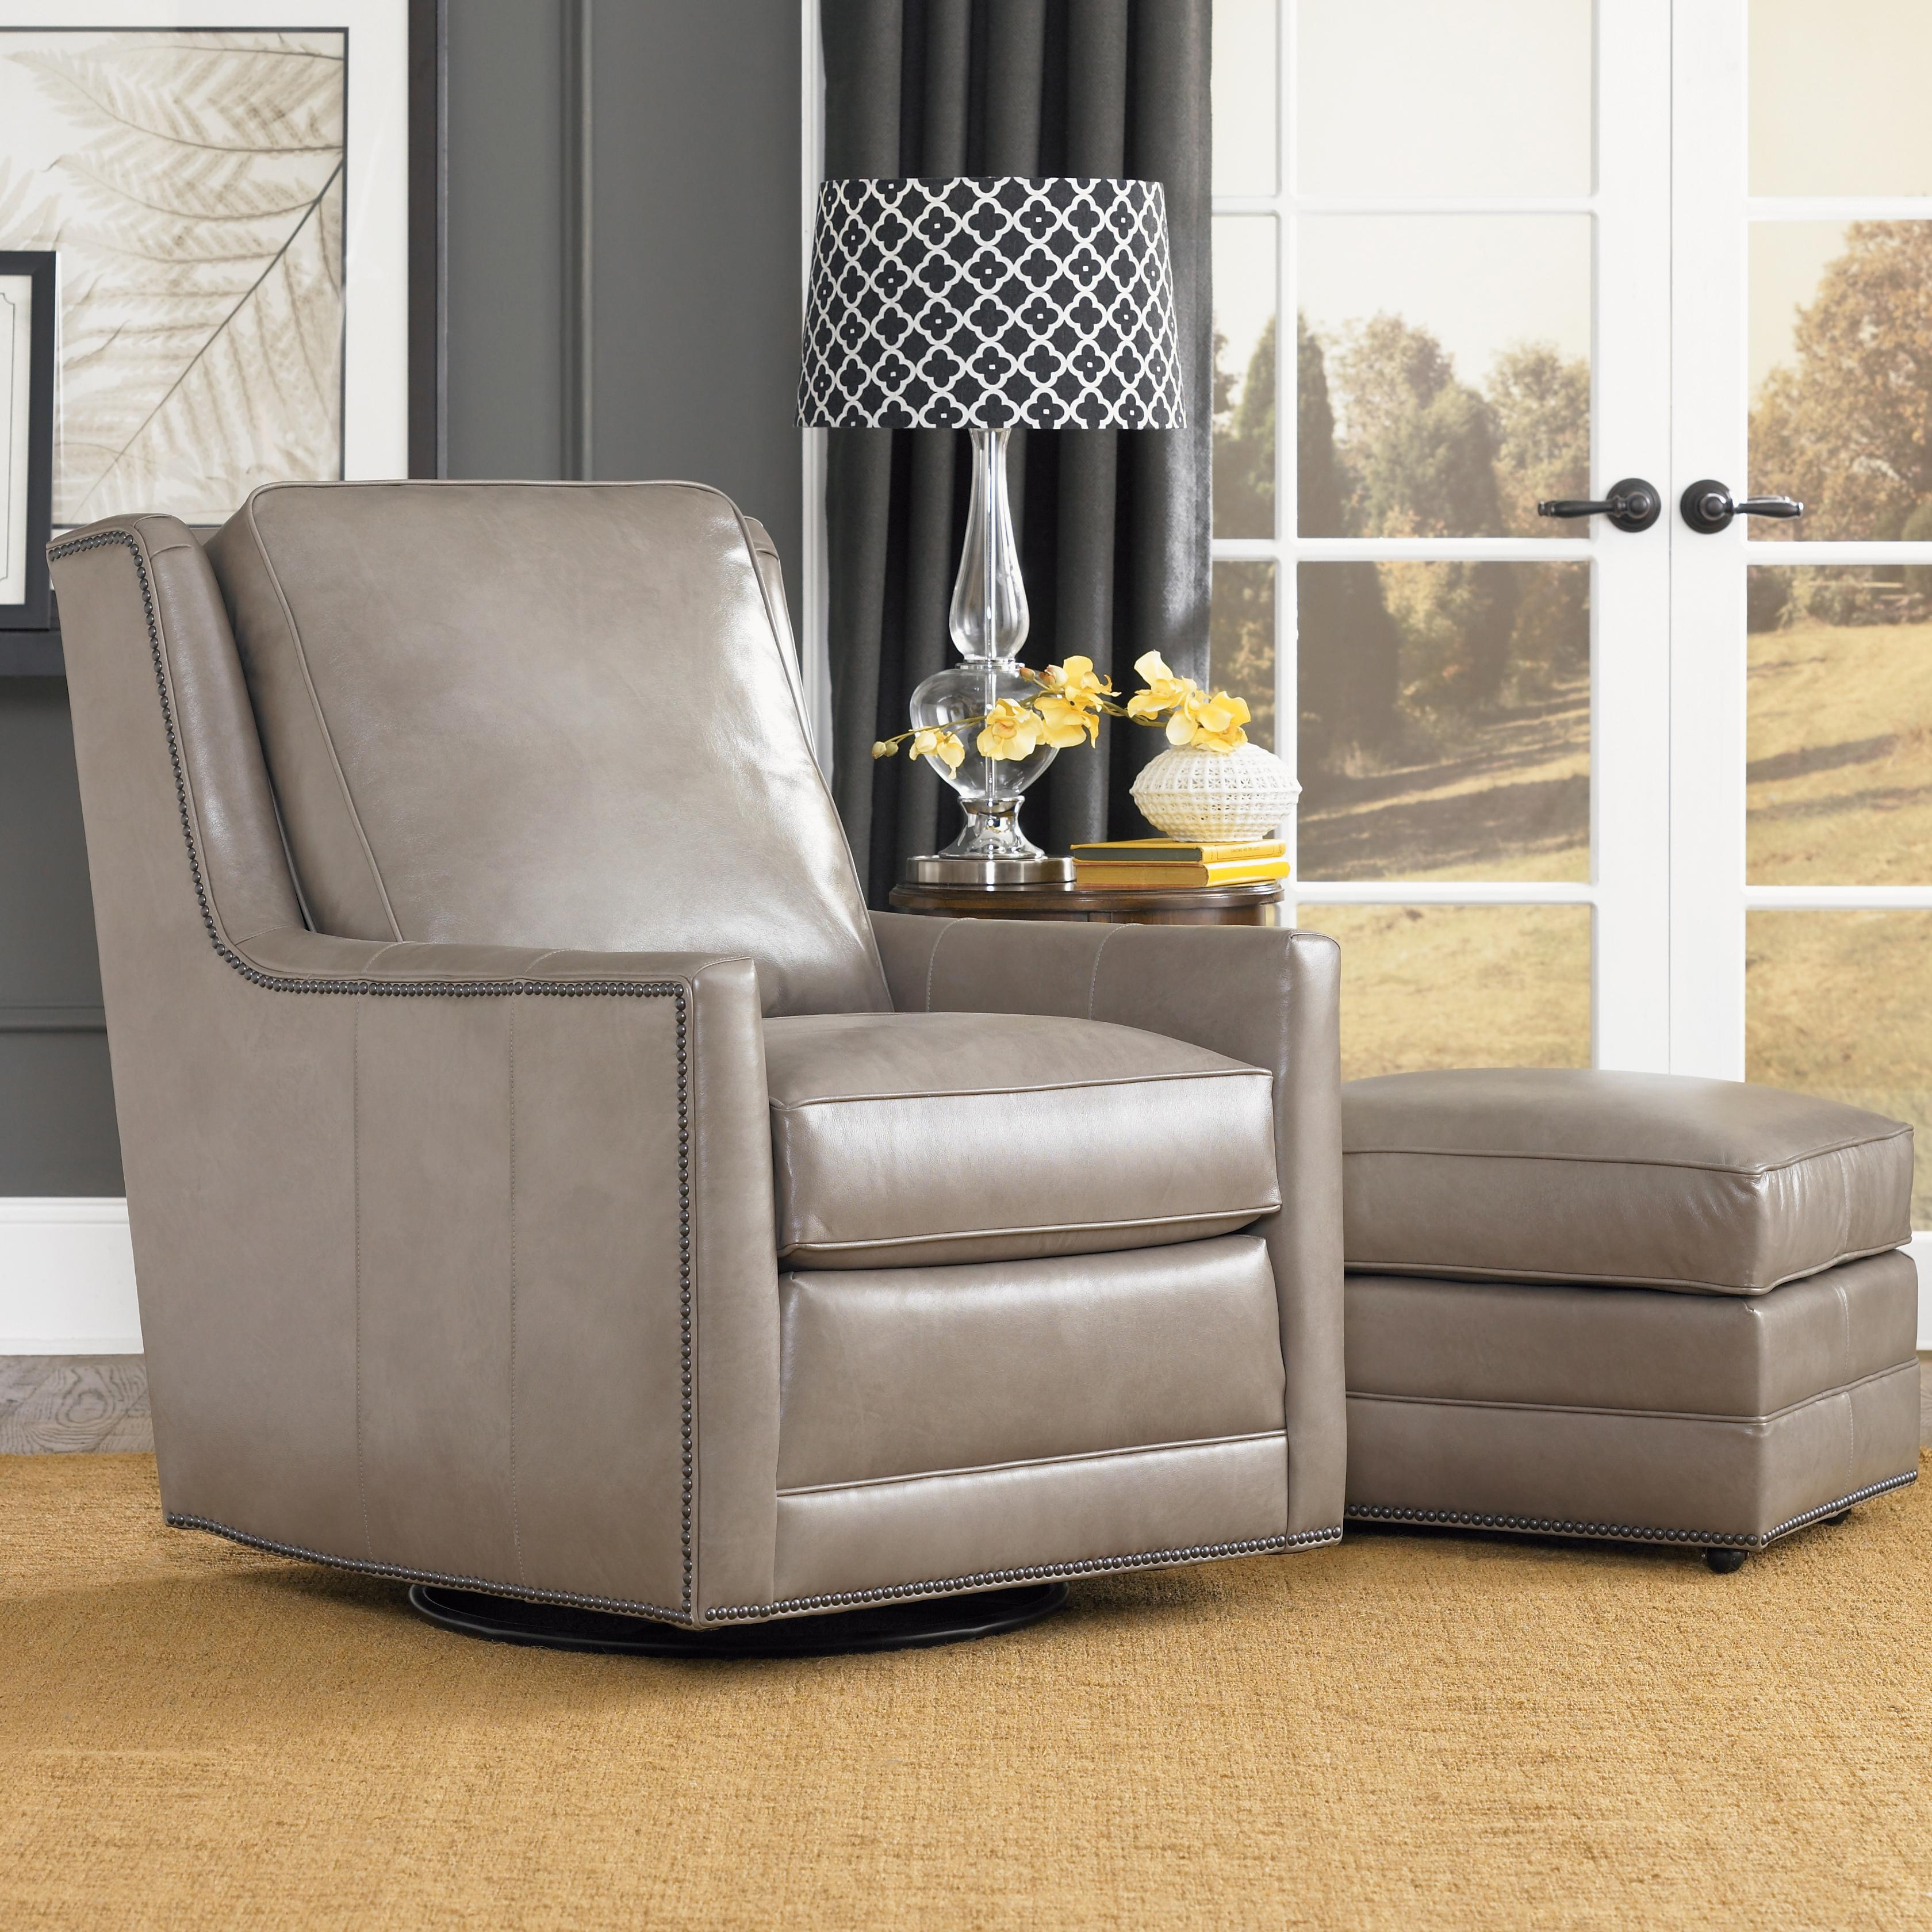 Accent Chairs and Ottomans SB Swivel Chair and Ottoman Set by Smith Brothers at Mueller Furniture